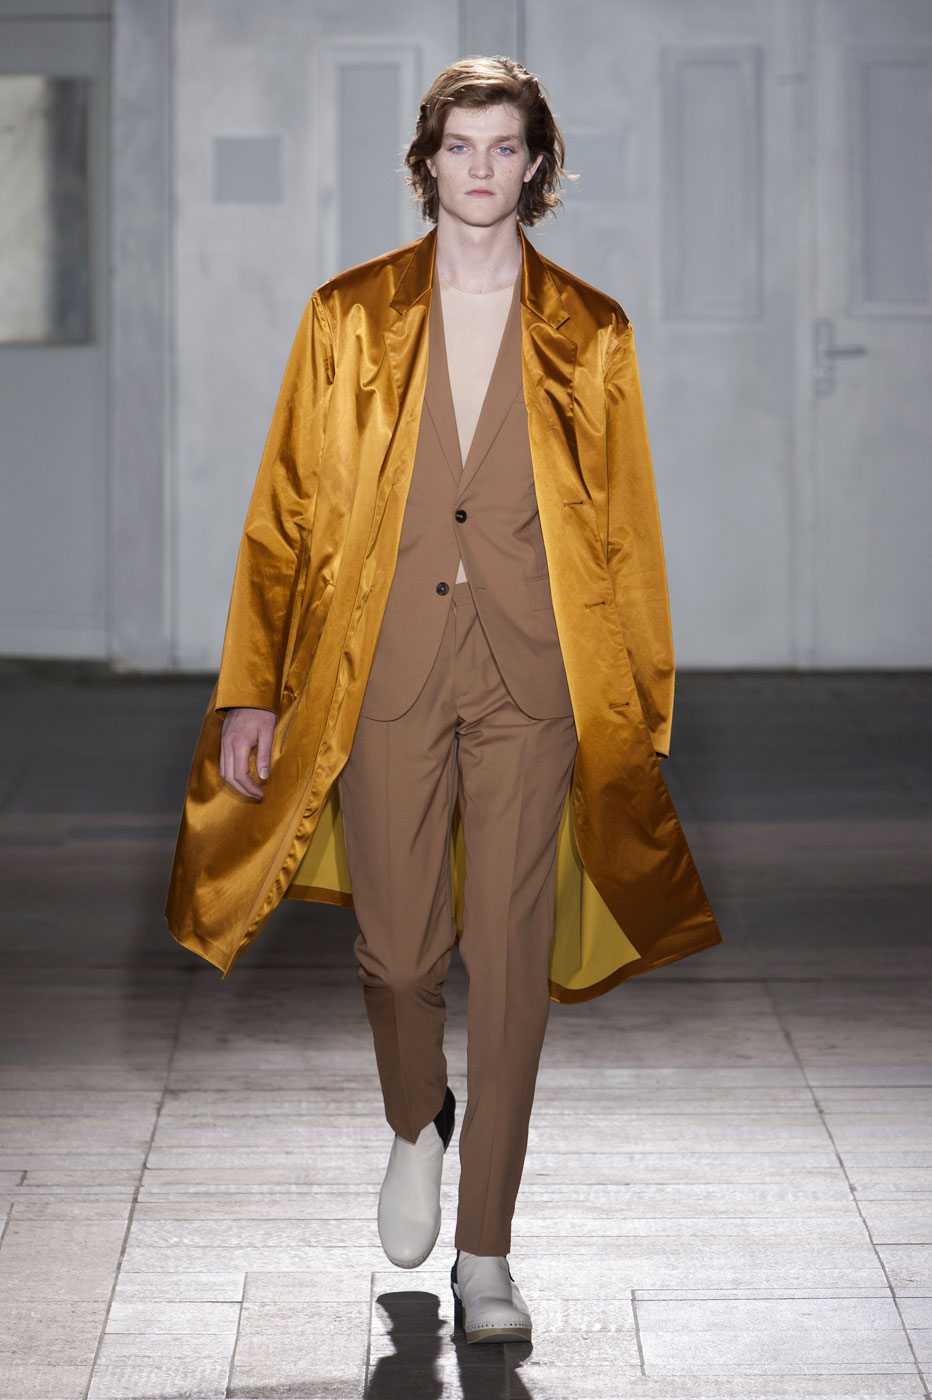 Maison martin margiela men 39 s spring 2015 fashion show for Fashion maison